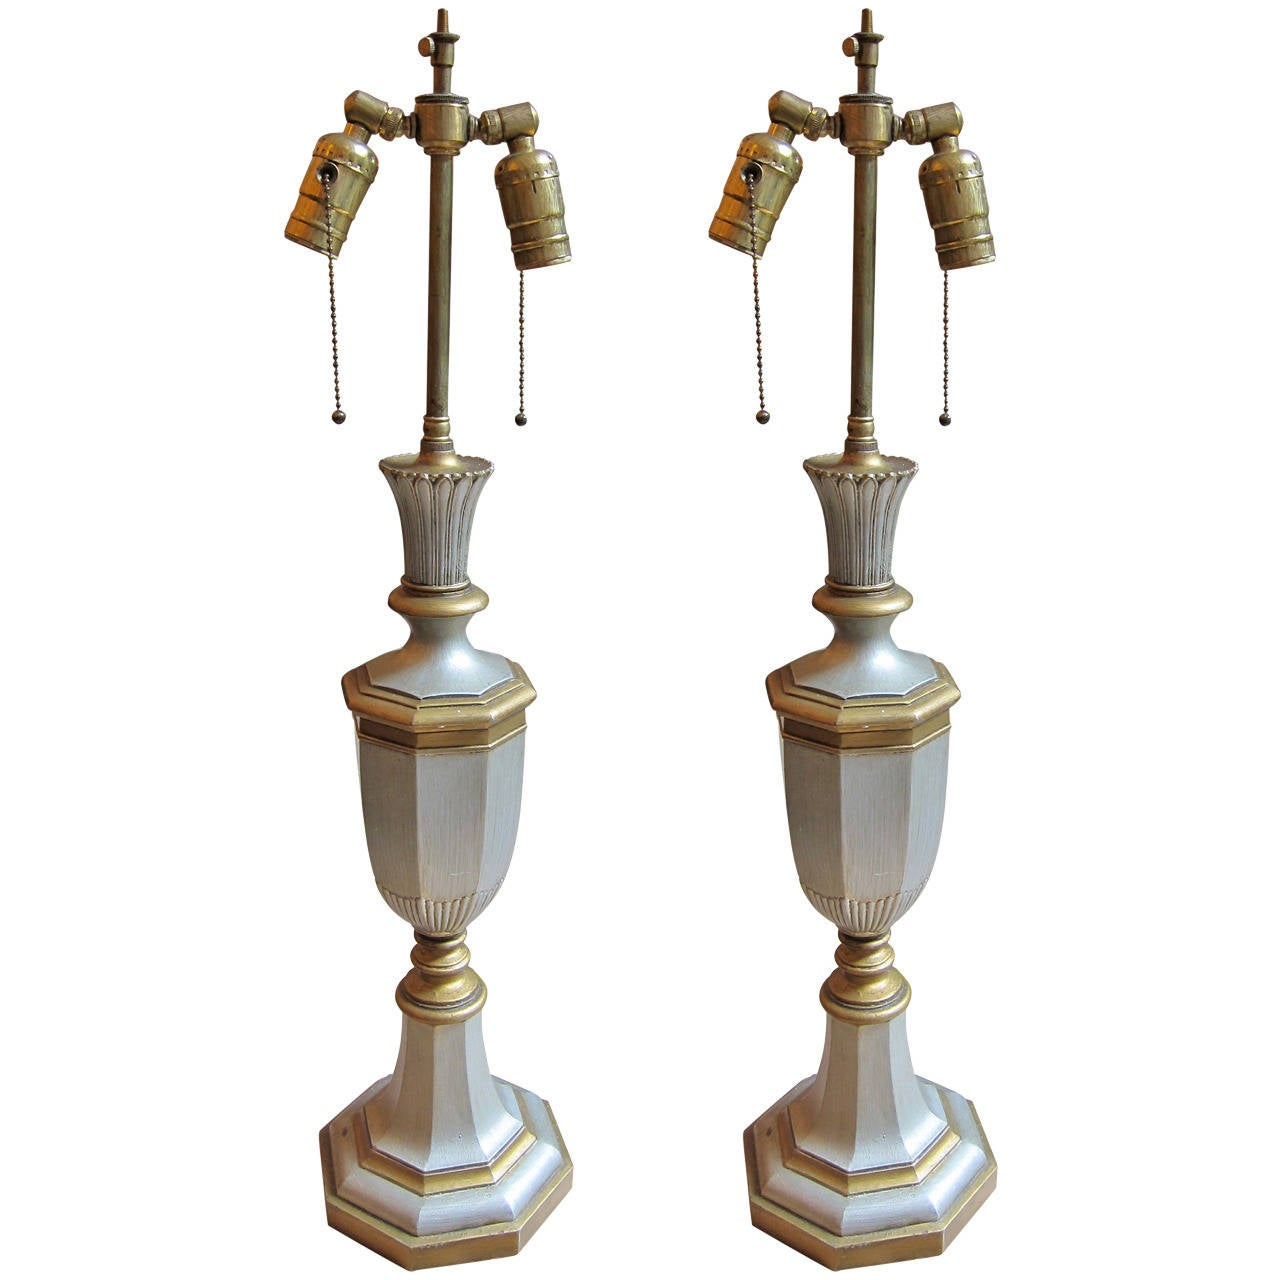 Pair Of UK Georgian Style Bronze Table Lamps With Silver And Gold Plating 19